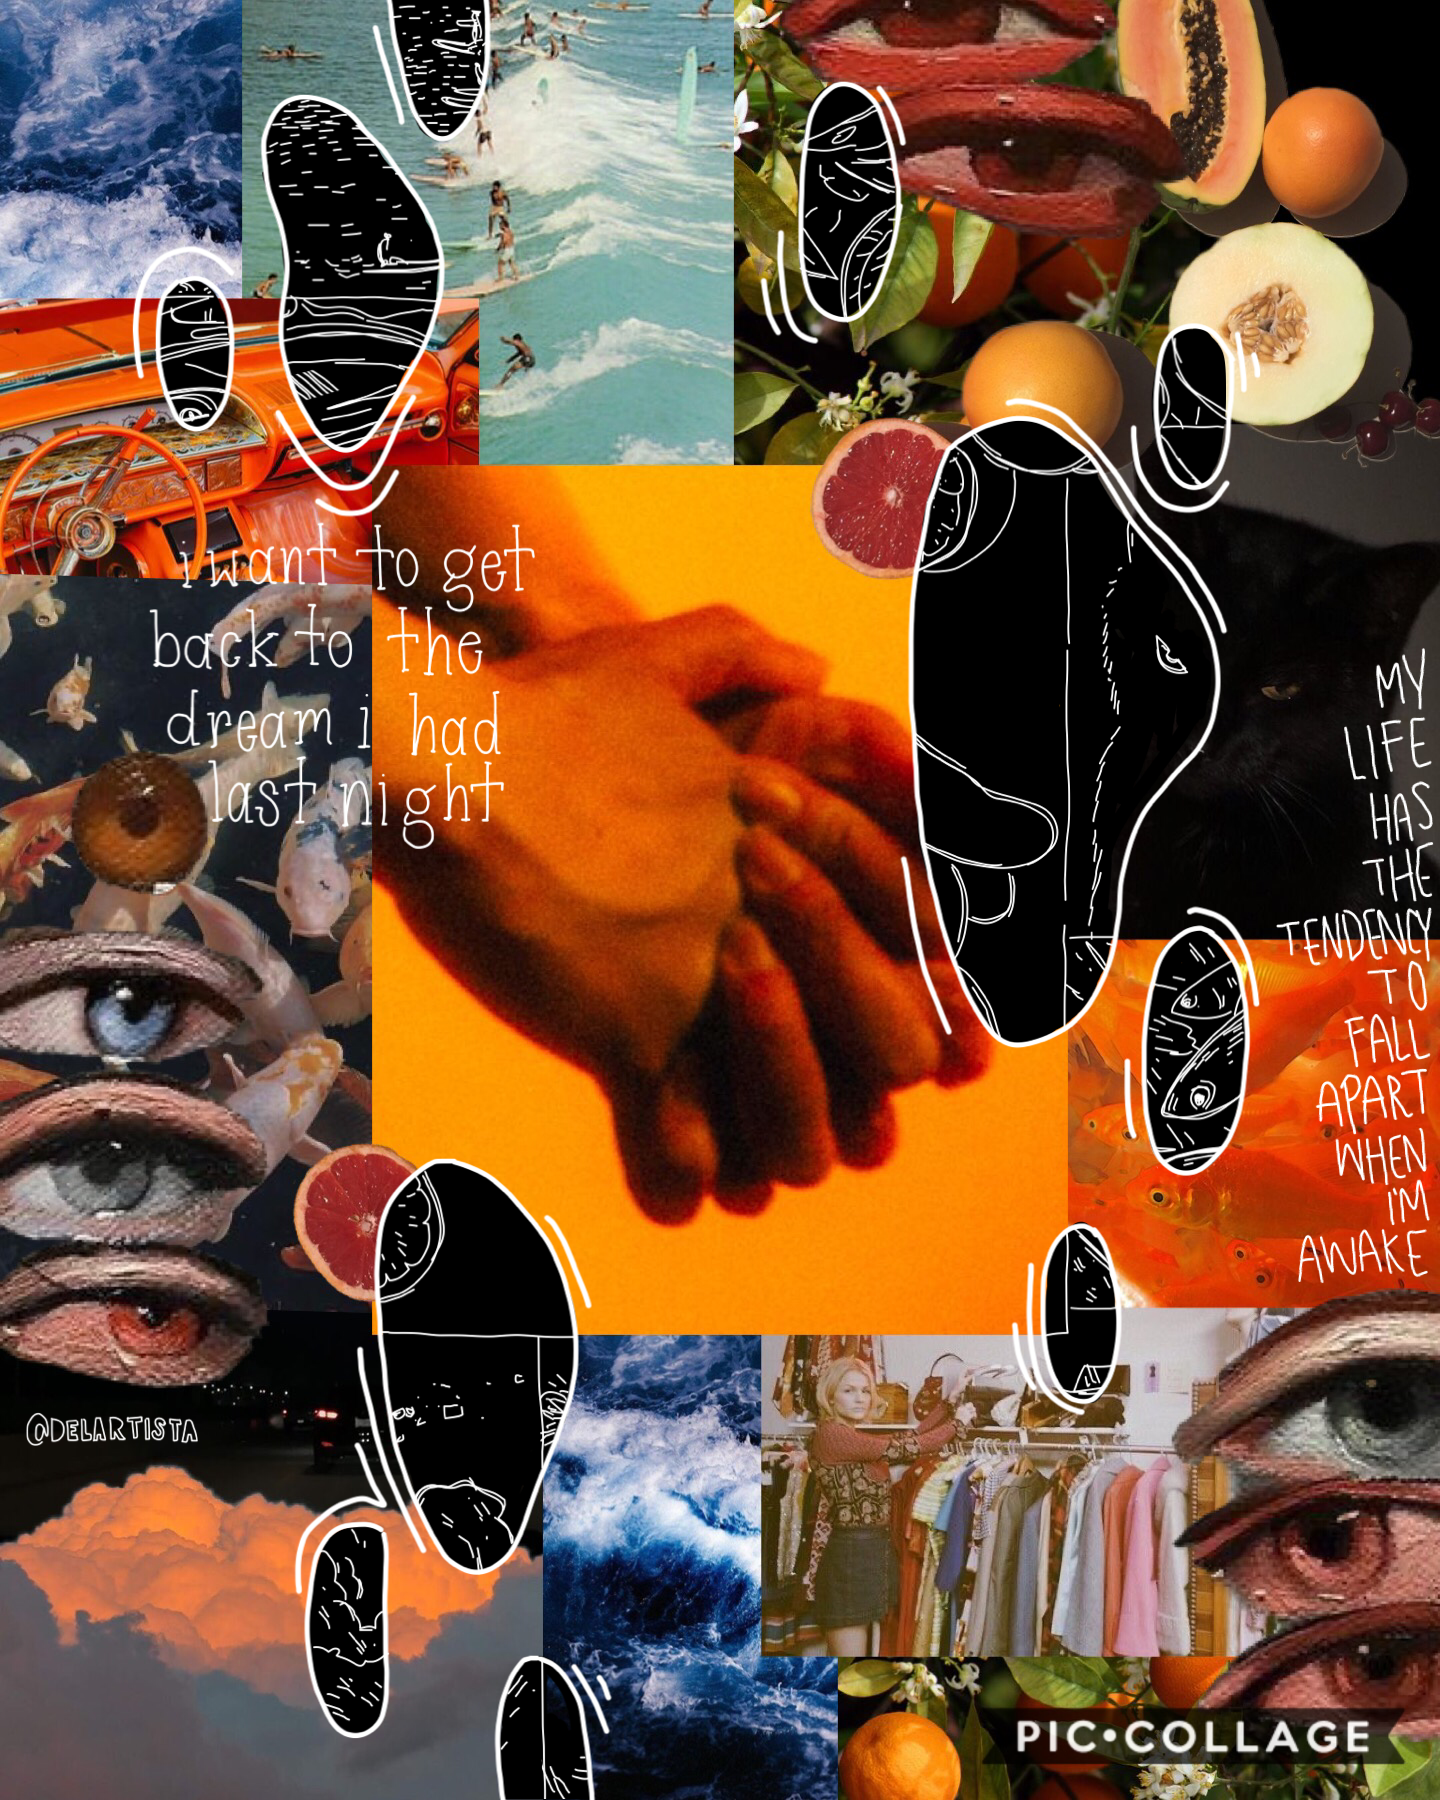 tap Woah, an actual collage that I don't completely hate! Finally finished 1 of the like 5 collages I'm working on Happy 2020!! I might make a post talking about what I want for myself this year but idk yet. Break is almost over and I'm kind of stressing